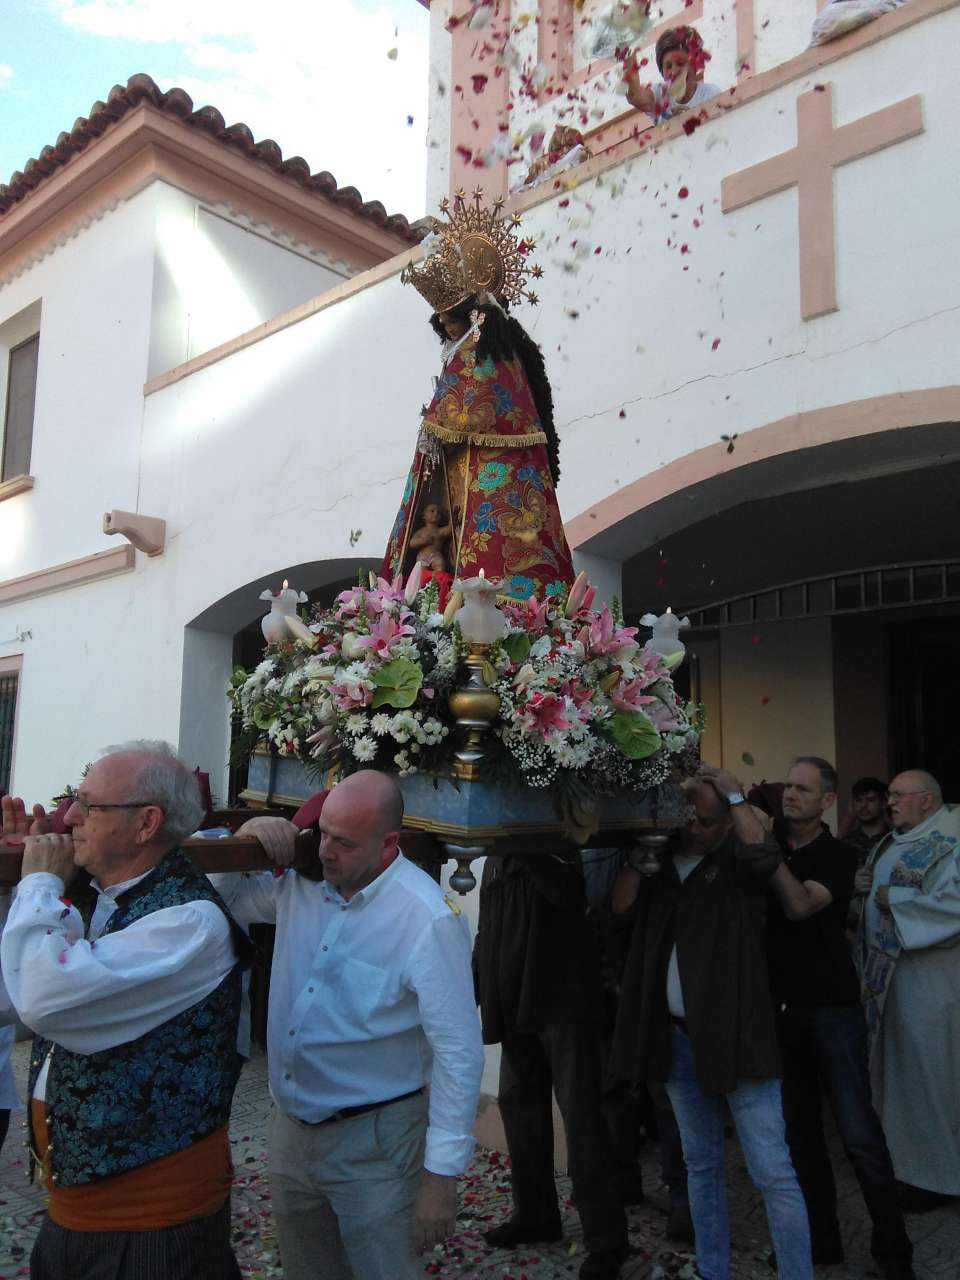 Procession of the Virgin of the Helpless through the streets of the neighborhood of la Malvarrosa 1